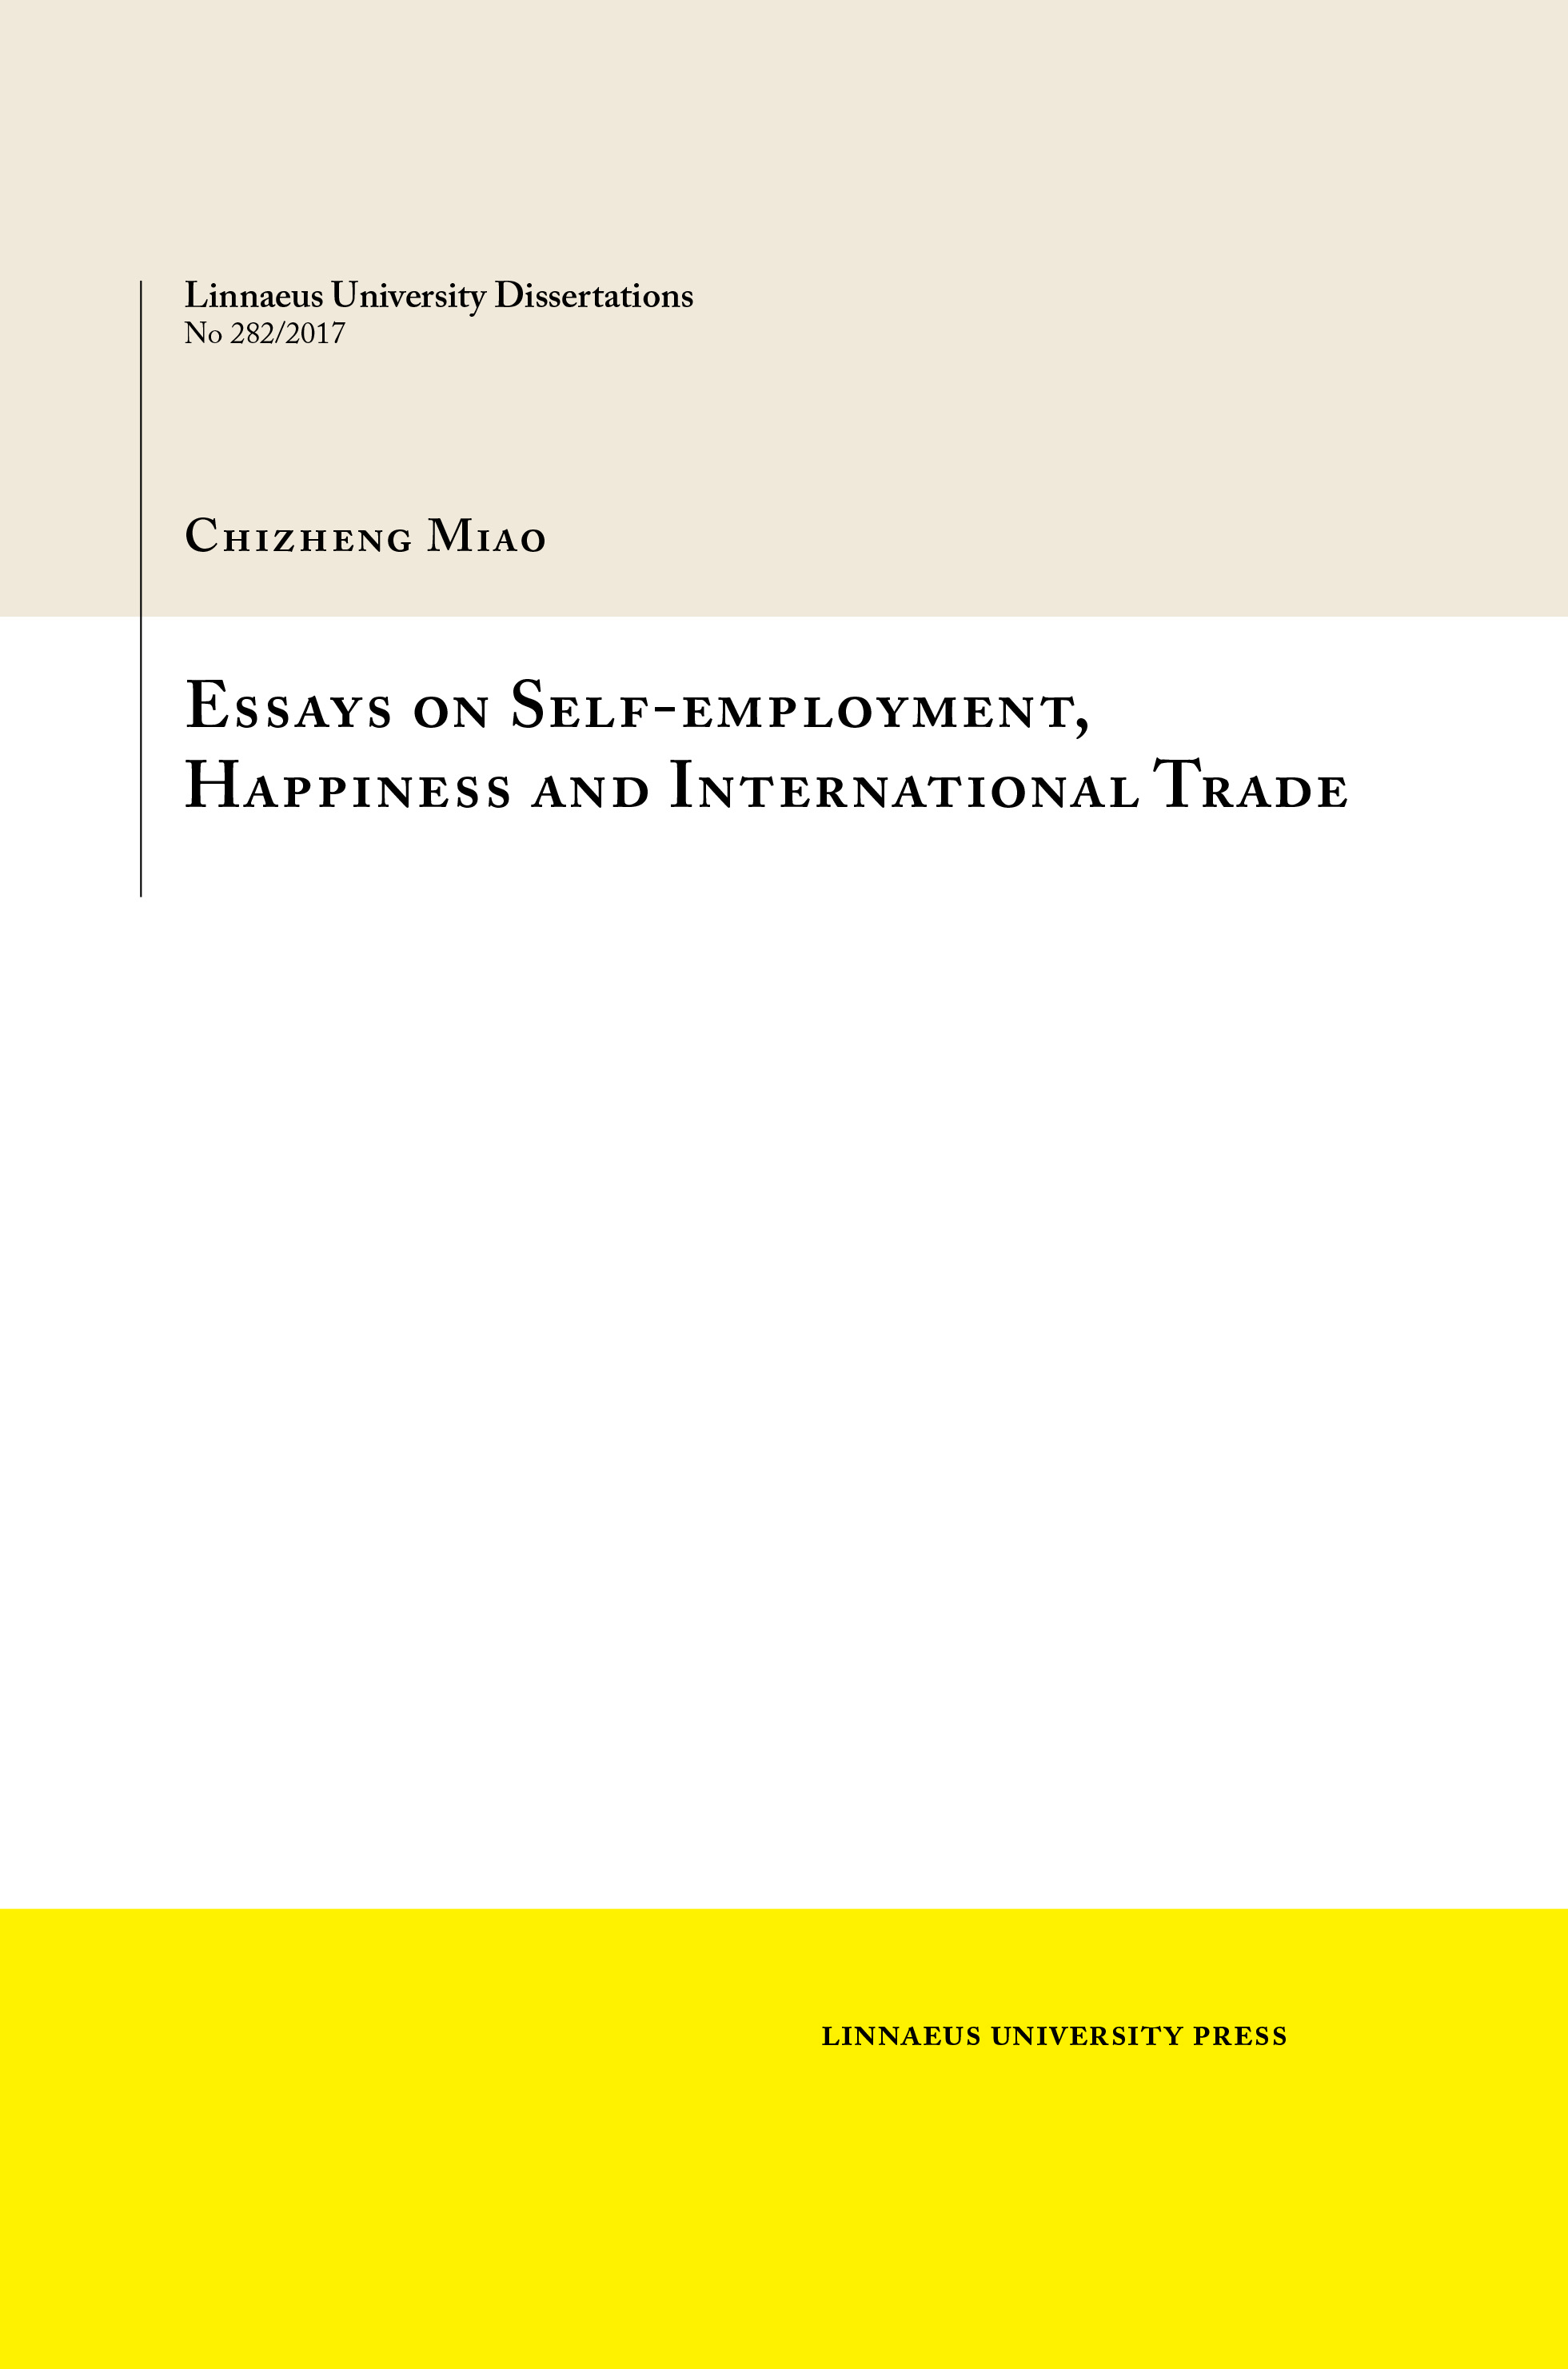 essays on self employment happiness and international trade